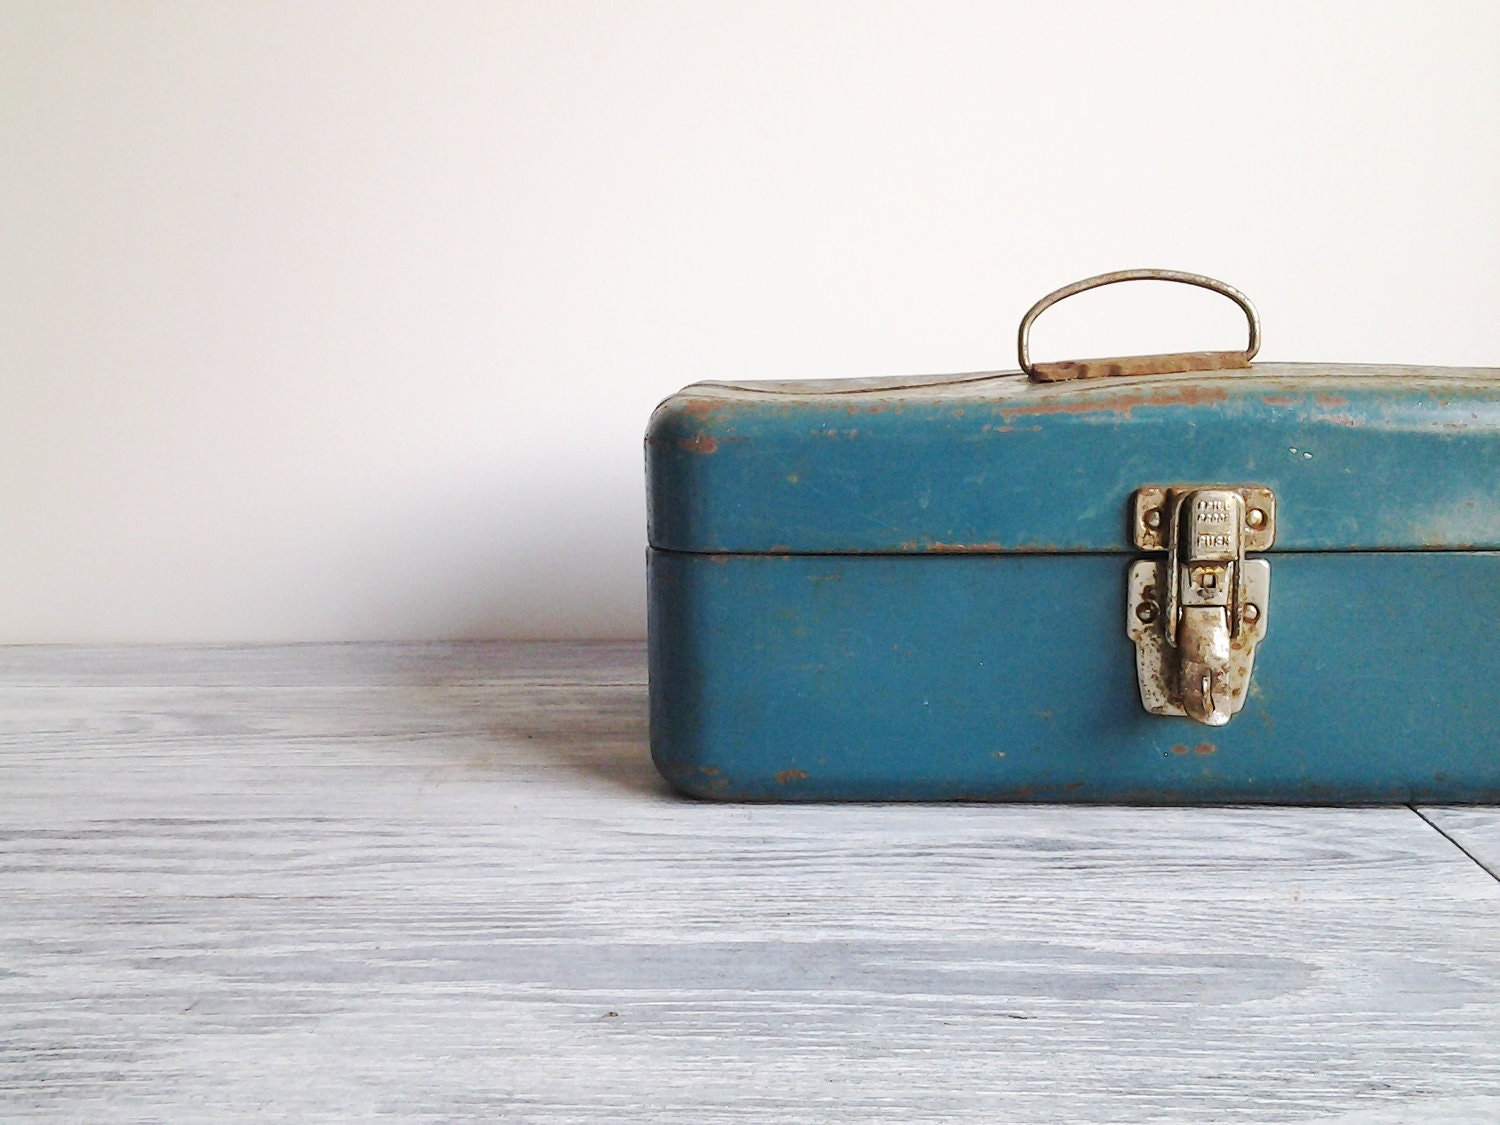 Vintage Teal Blue Metal Tackle Box Rusted Tool Case - CocoAndBear